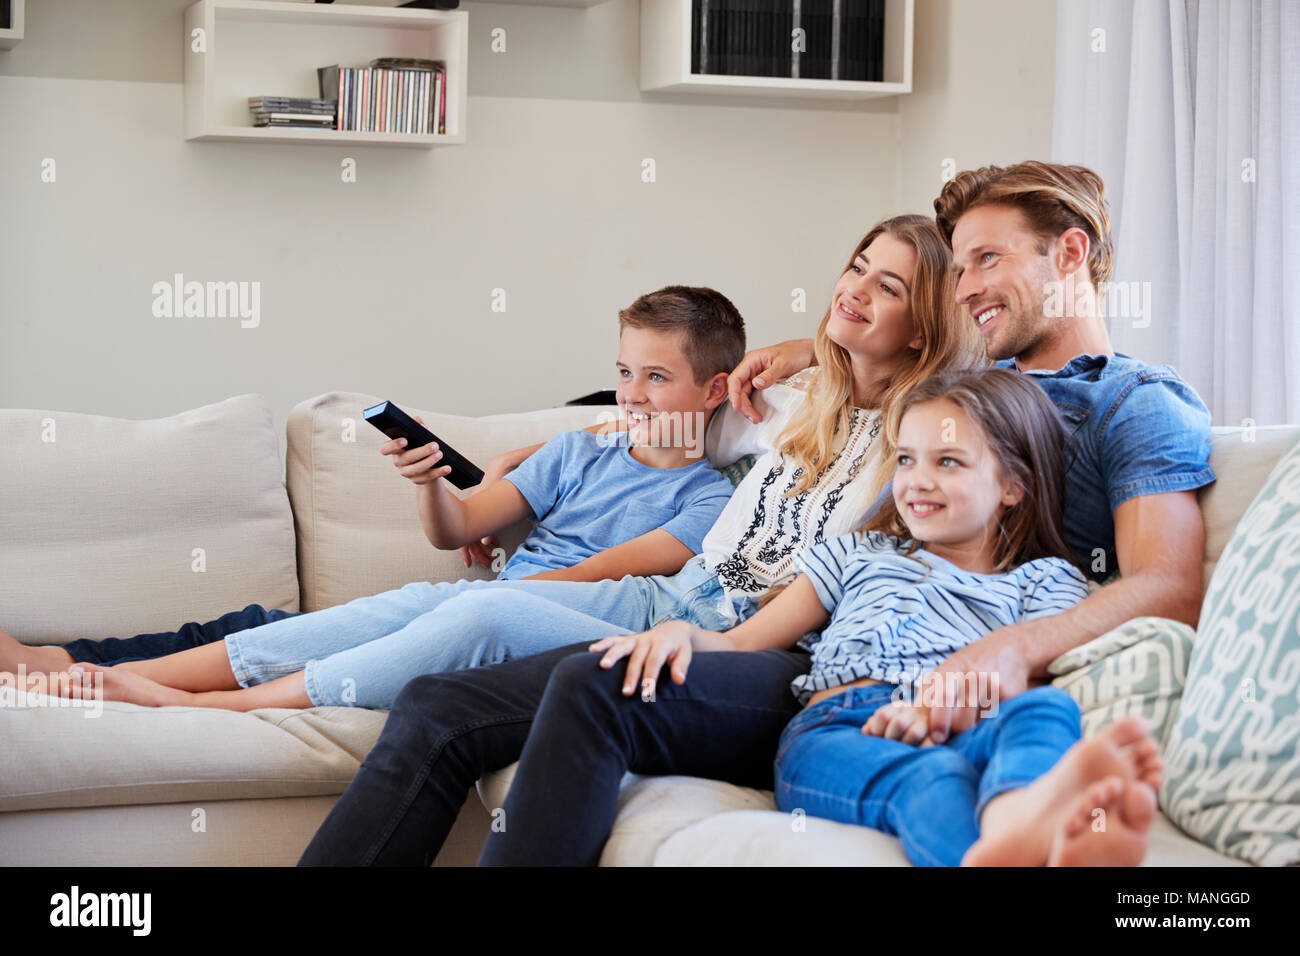 Family Sitting On Sofa At Home Watching TV Together - Stock Image